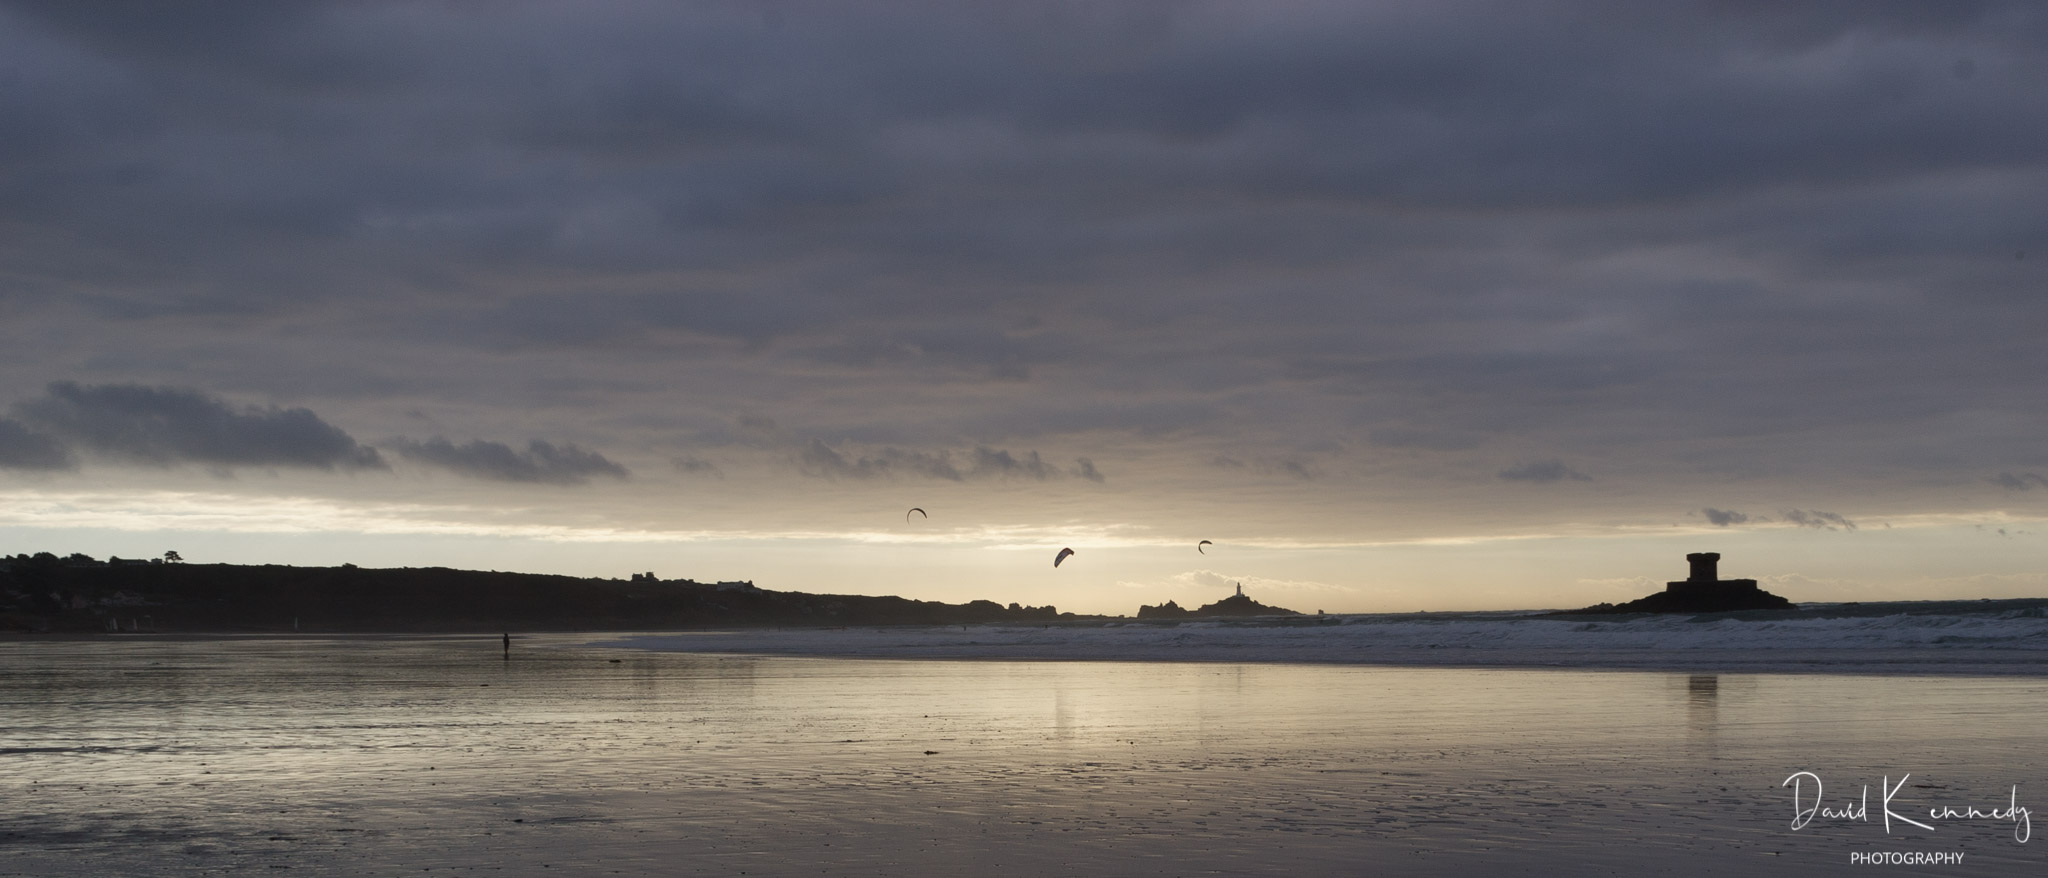 Para Surfers on St Ouen's Bay with backdrop of early sunset, lighthouse and defence tower